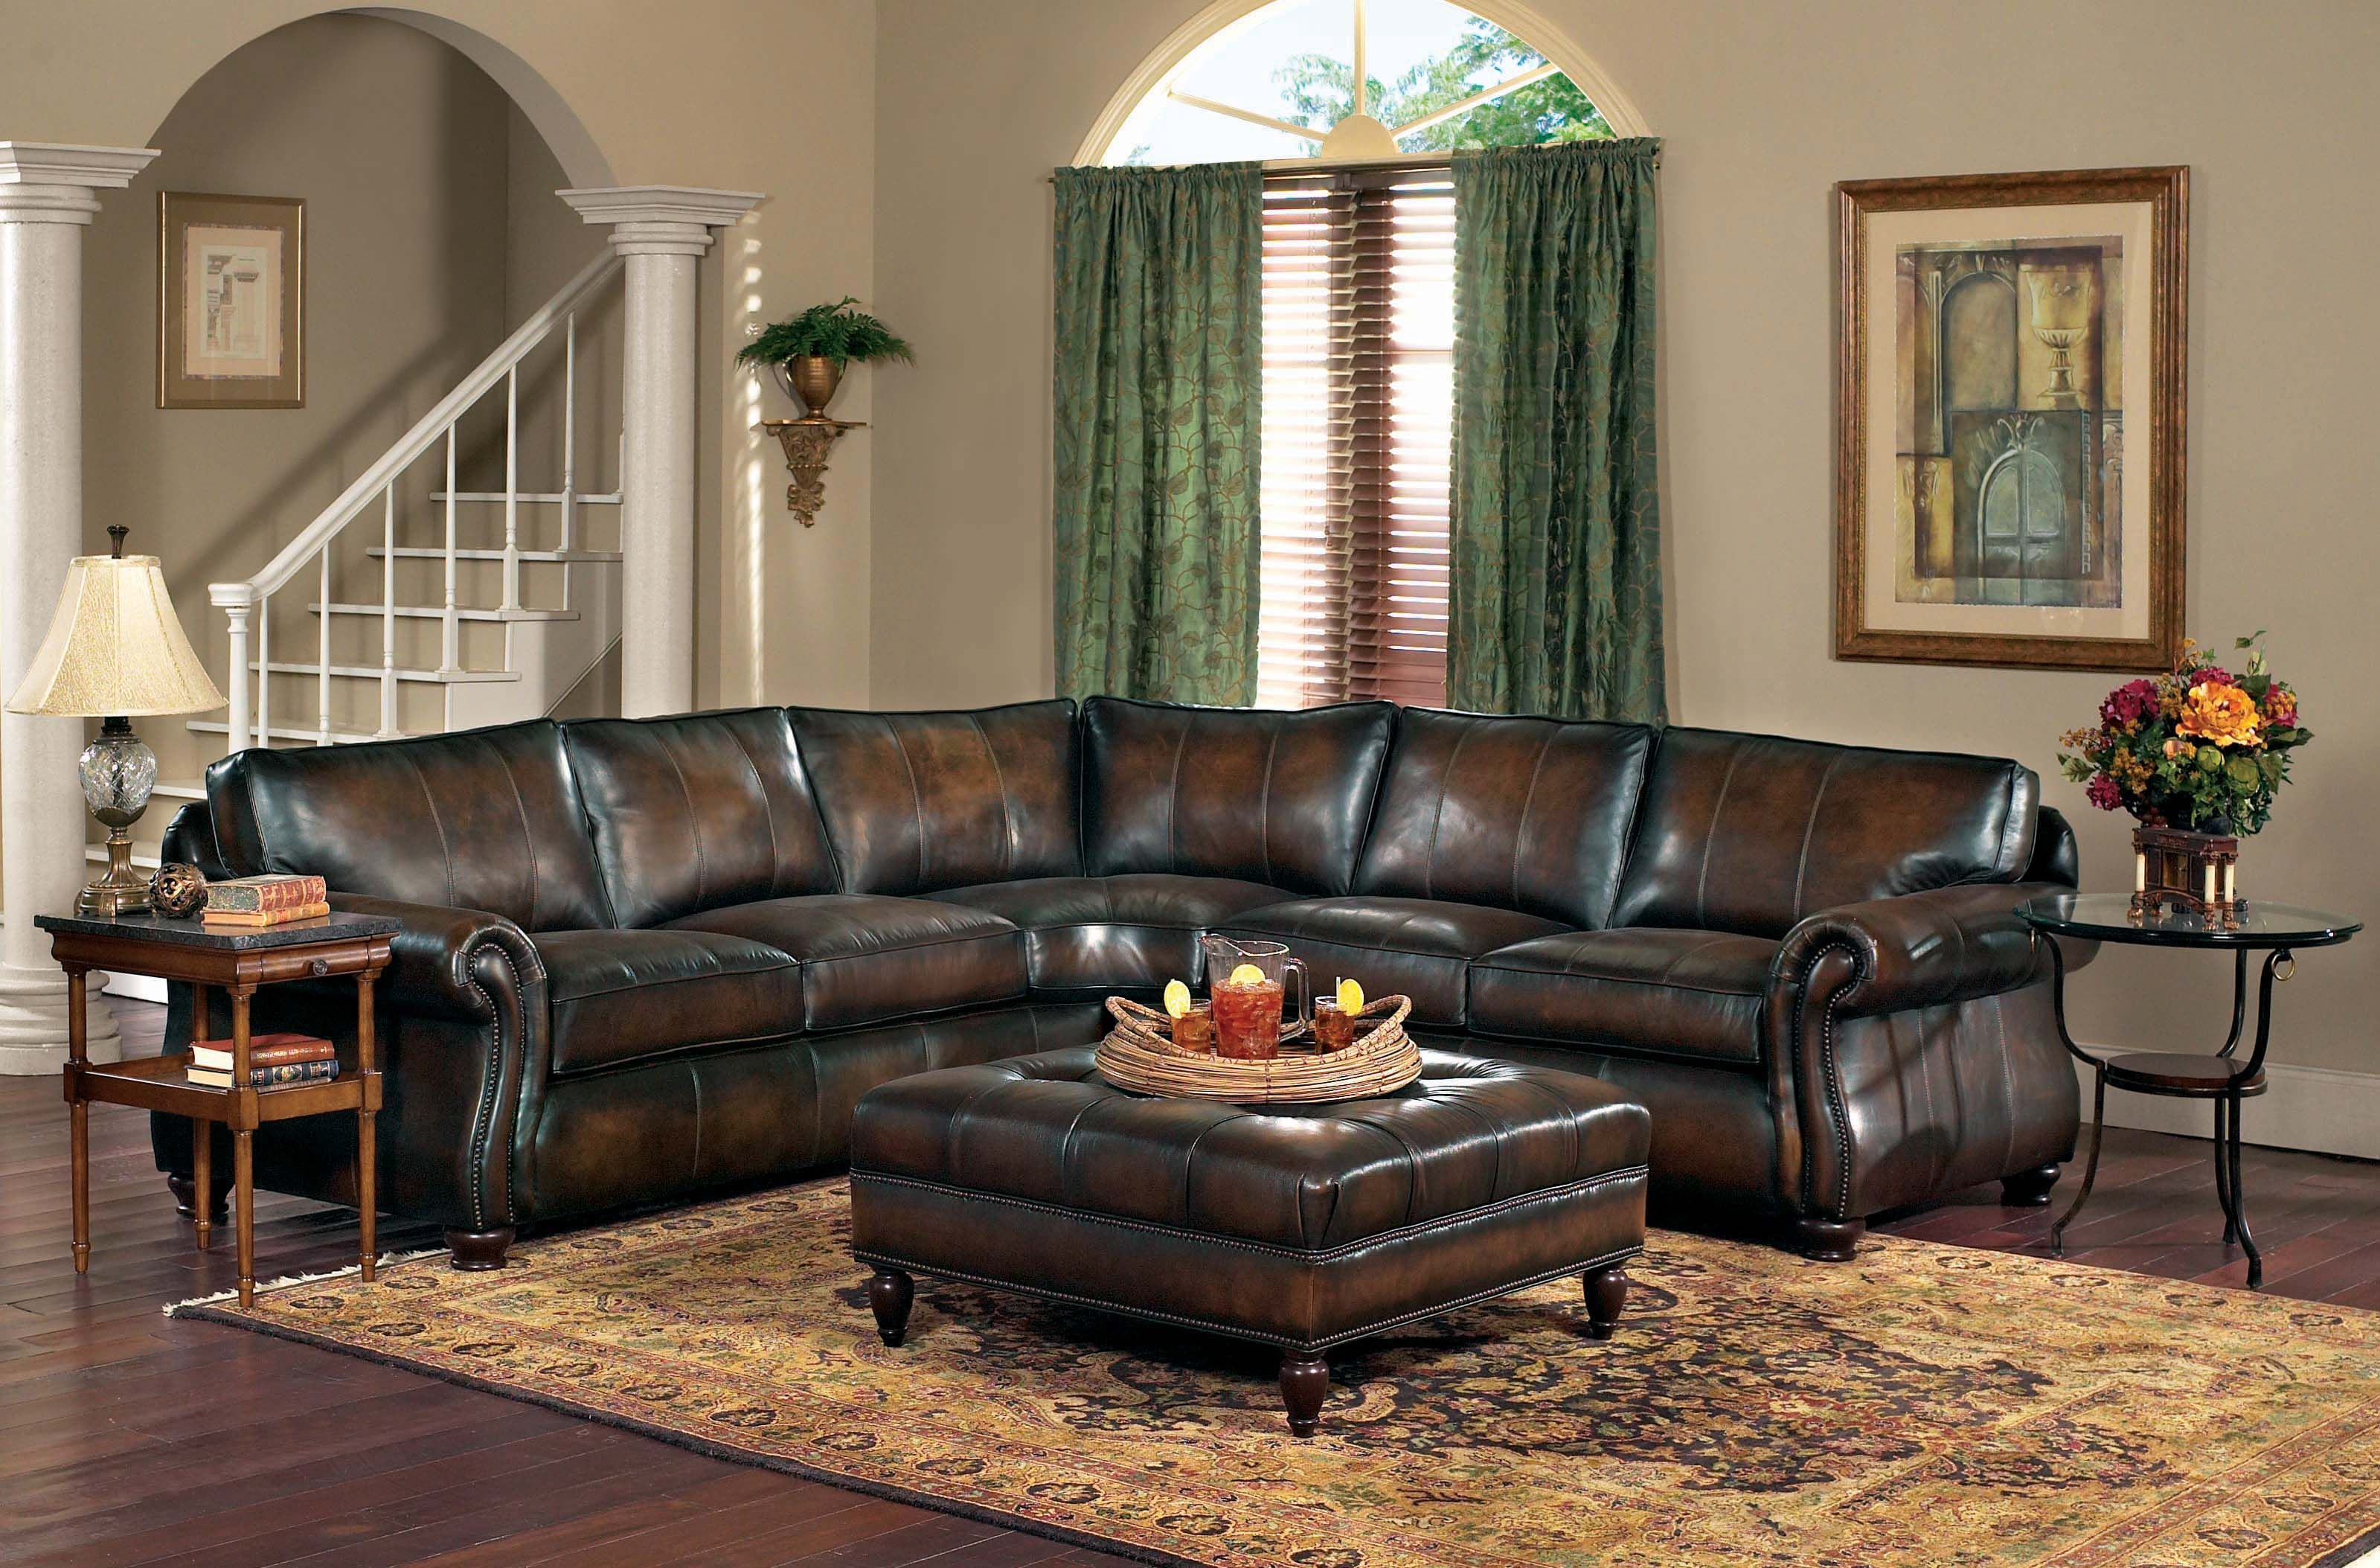 bernhardt vincent sofa reviews awesome sectional sofas living room van gogh 100 leather 2 piece